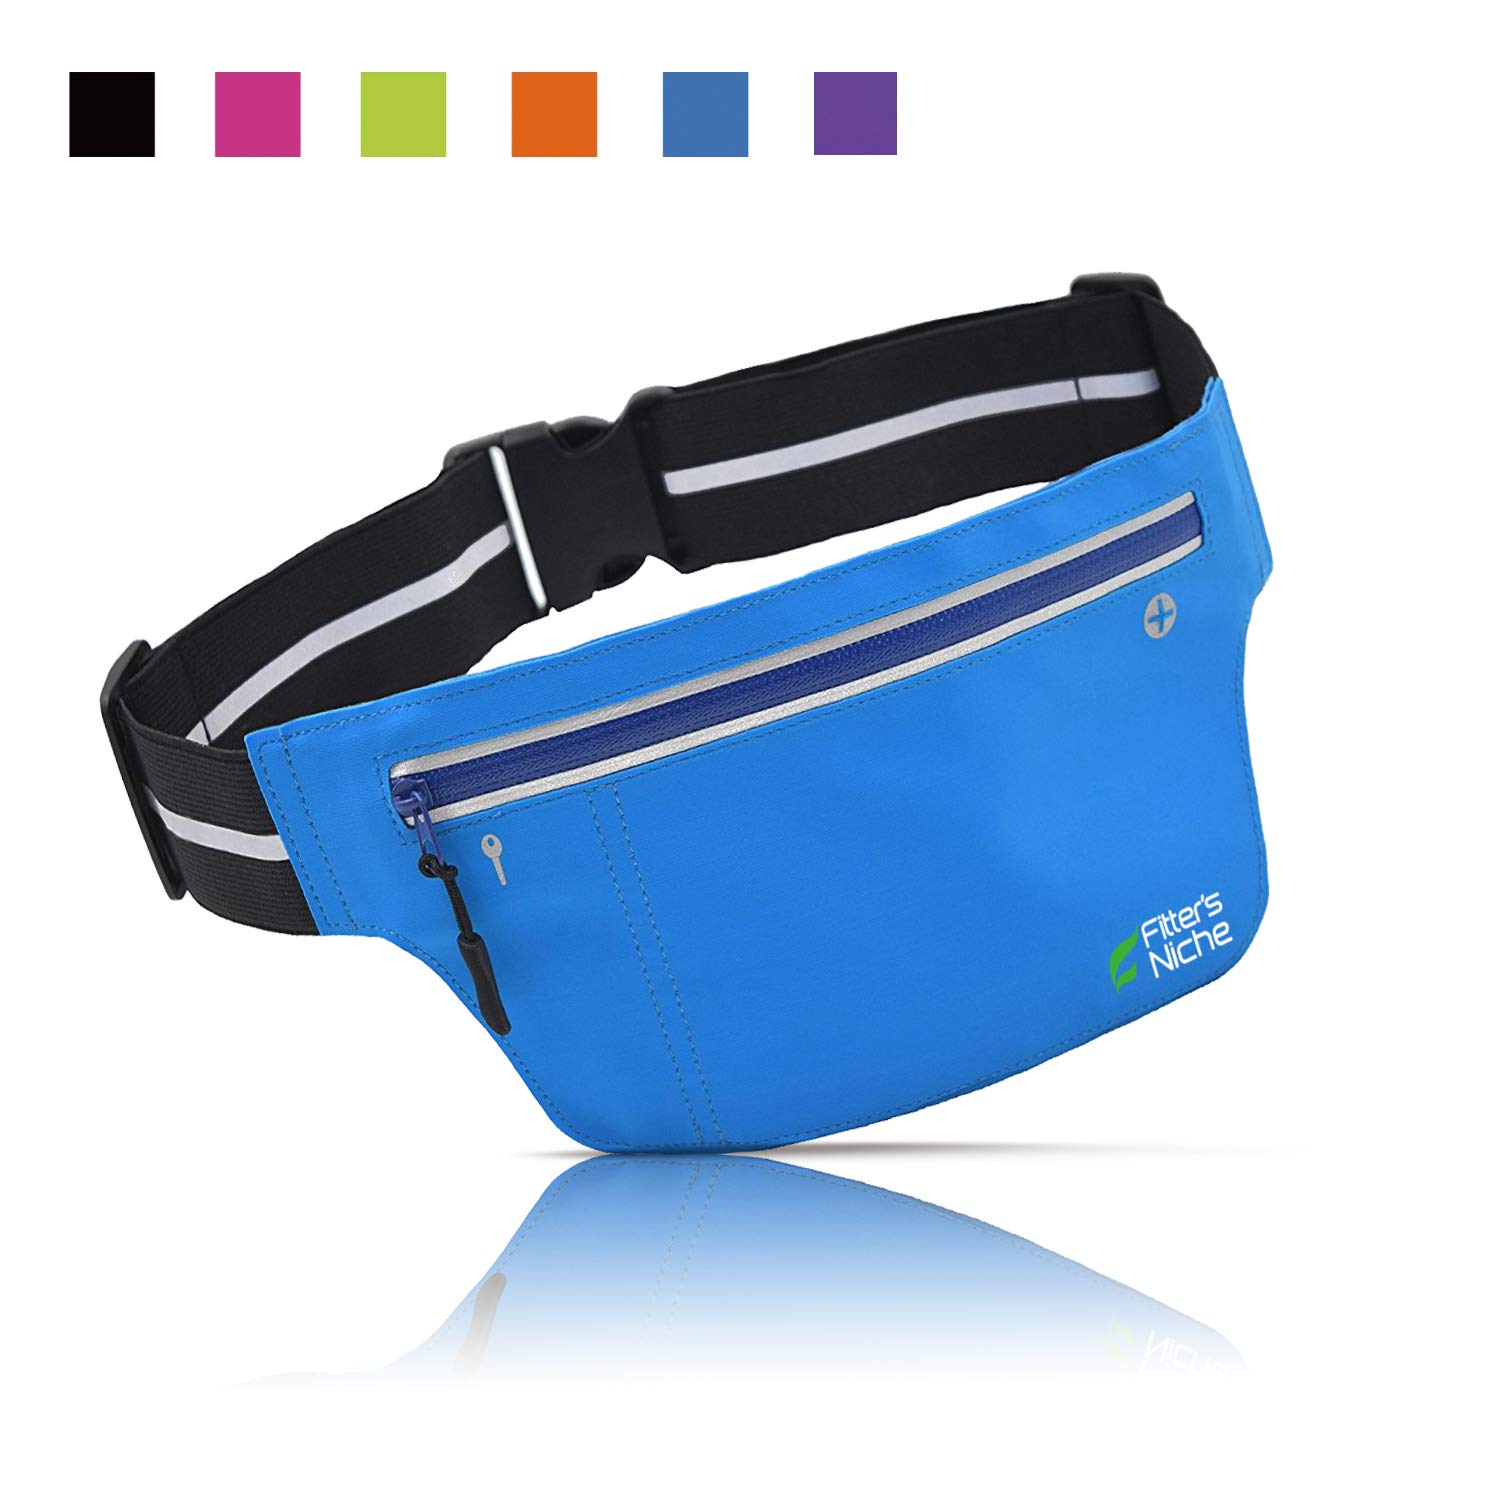 fitter's niche Ultra Slim Fanny Waist Pack Running Belt for Women Men Bounce Free Fitness Workout Pouch Super Light Bum Bag for iPhone Xs 8 Samsung When Cycling Jogging Hiking Marathon Gym Sports